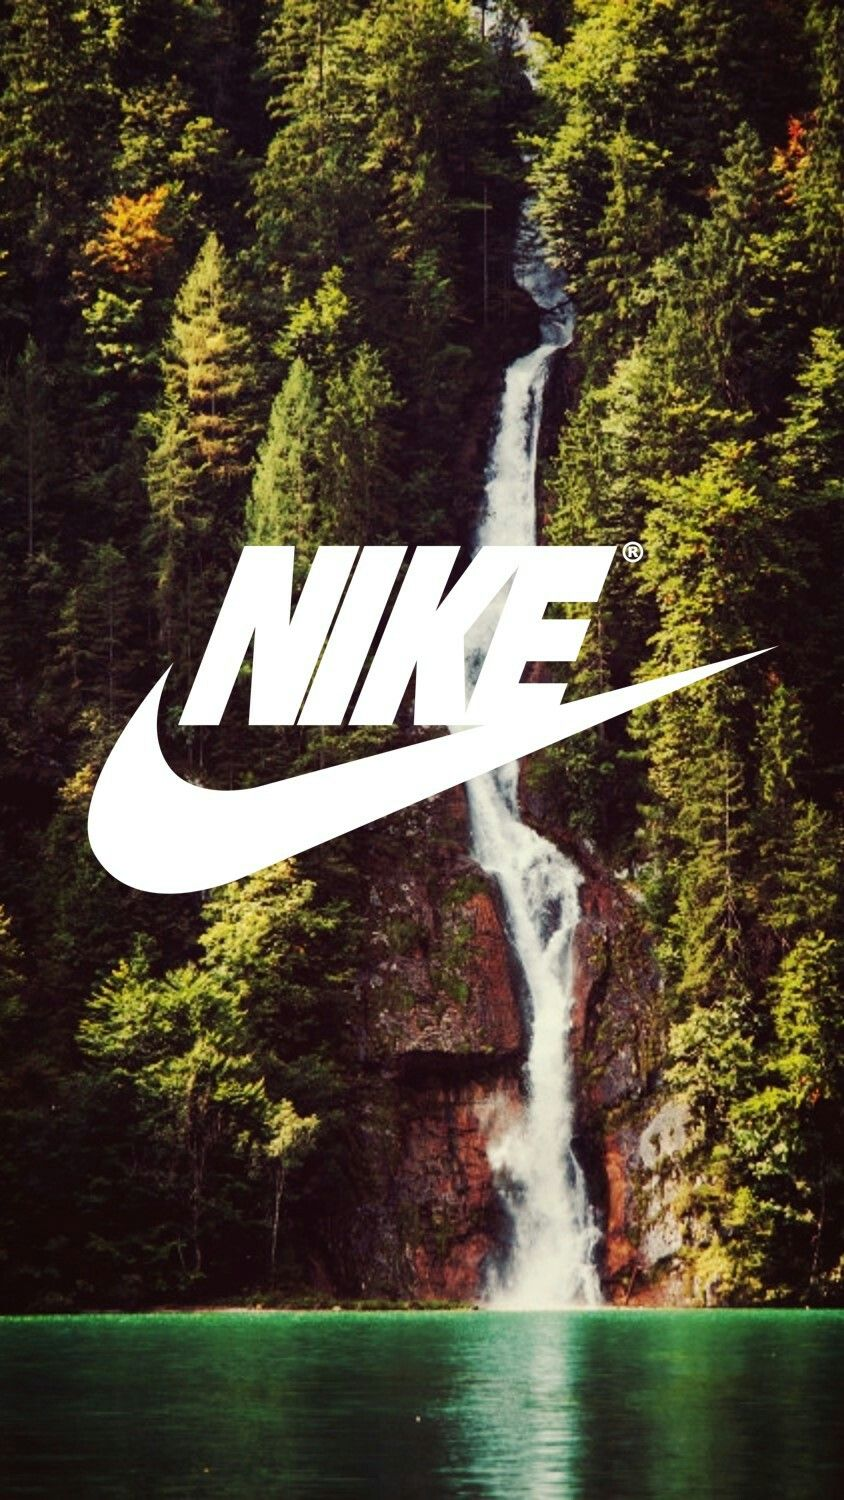 Pin By Drew P On Nike Phone Wallpaper Cool Nike Wallpapers Nike Wallpaper Holographic Wallpapers